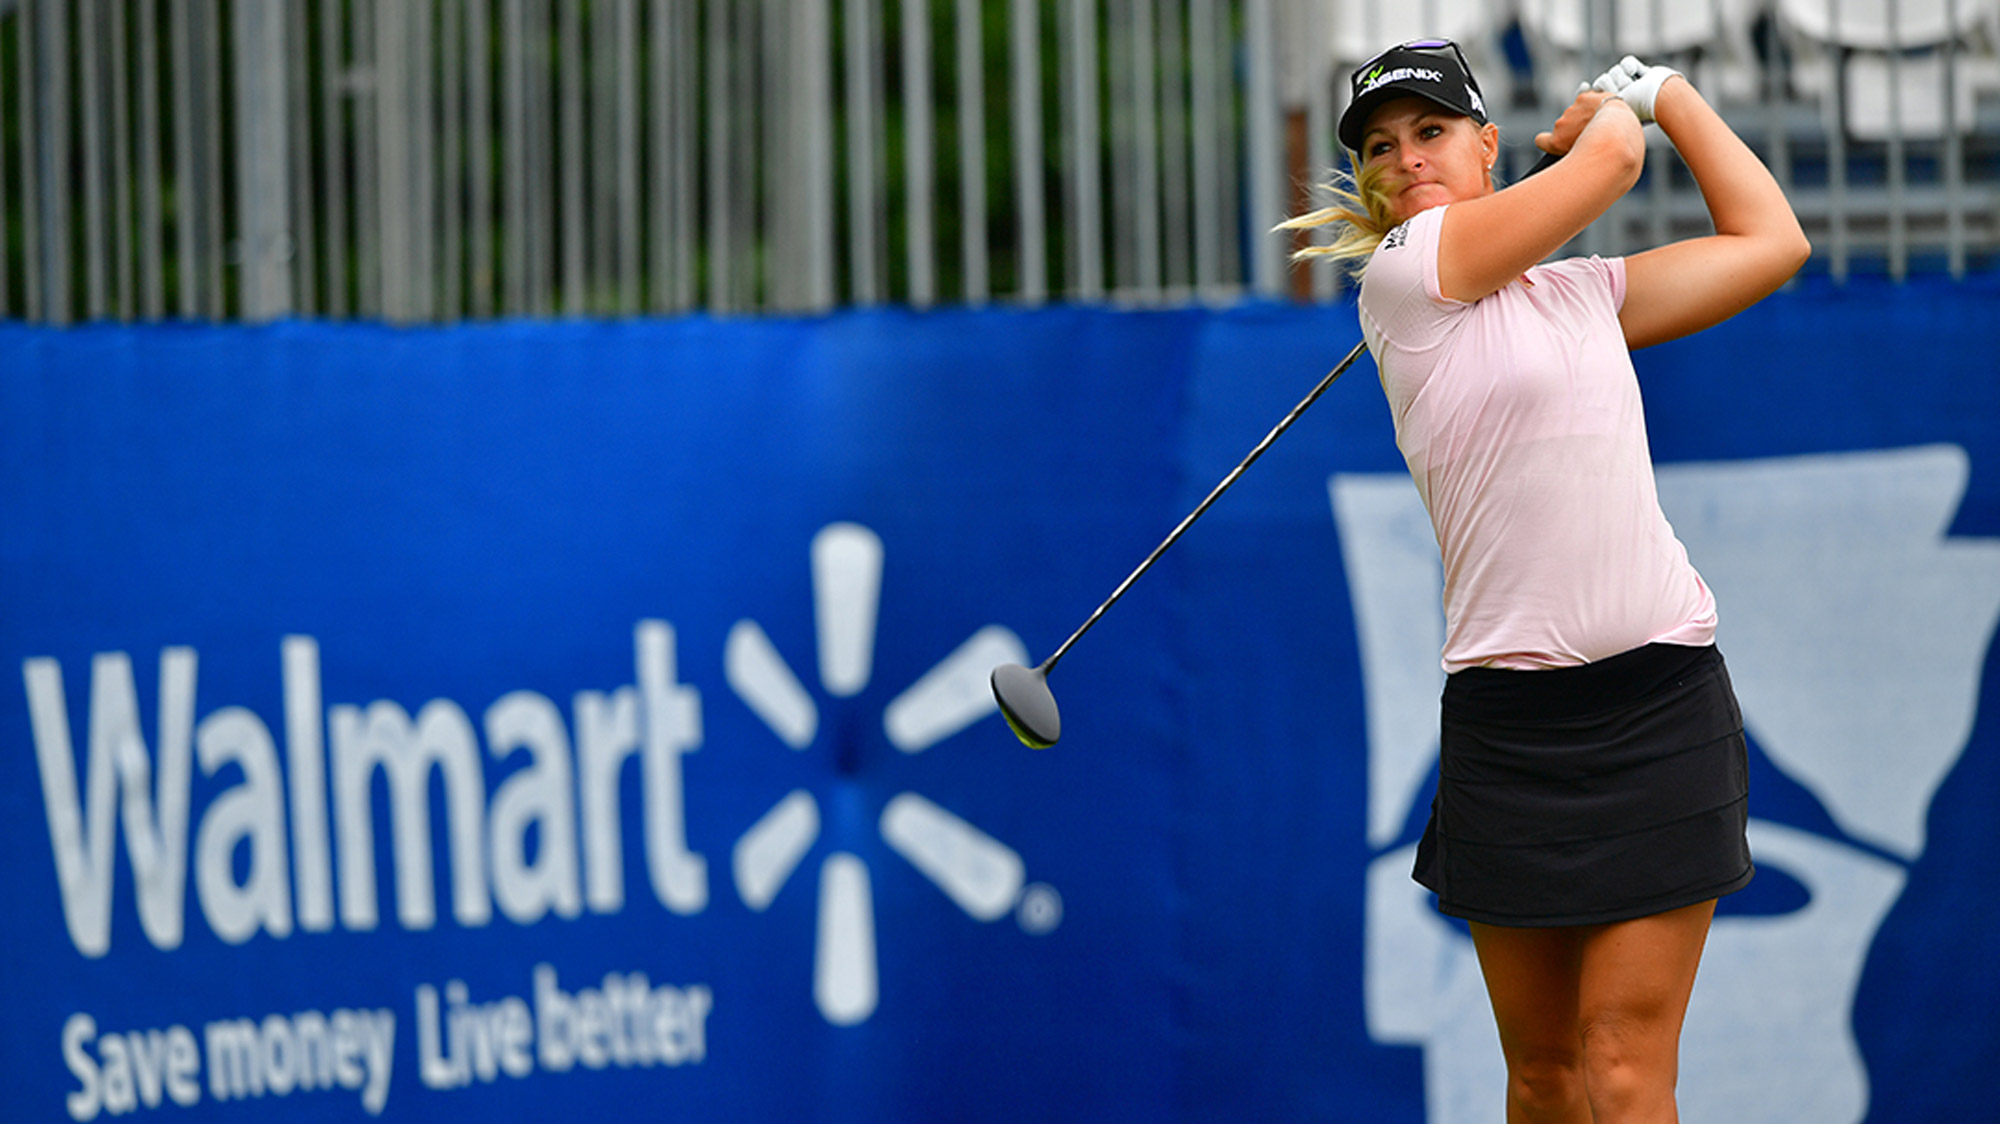 Anna Nordqvist Takes a Swing in Arkansas